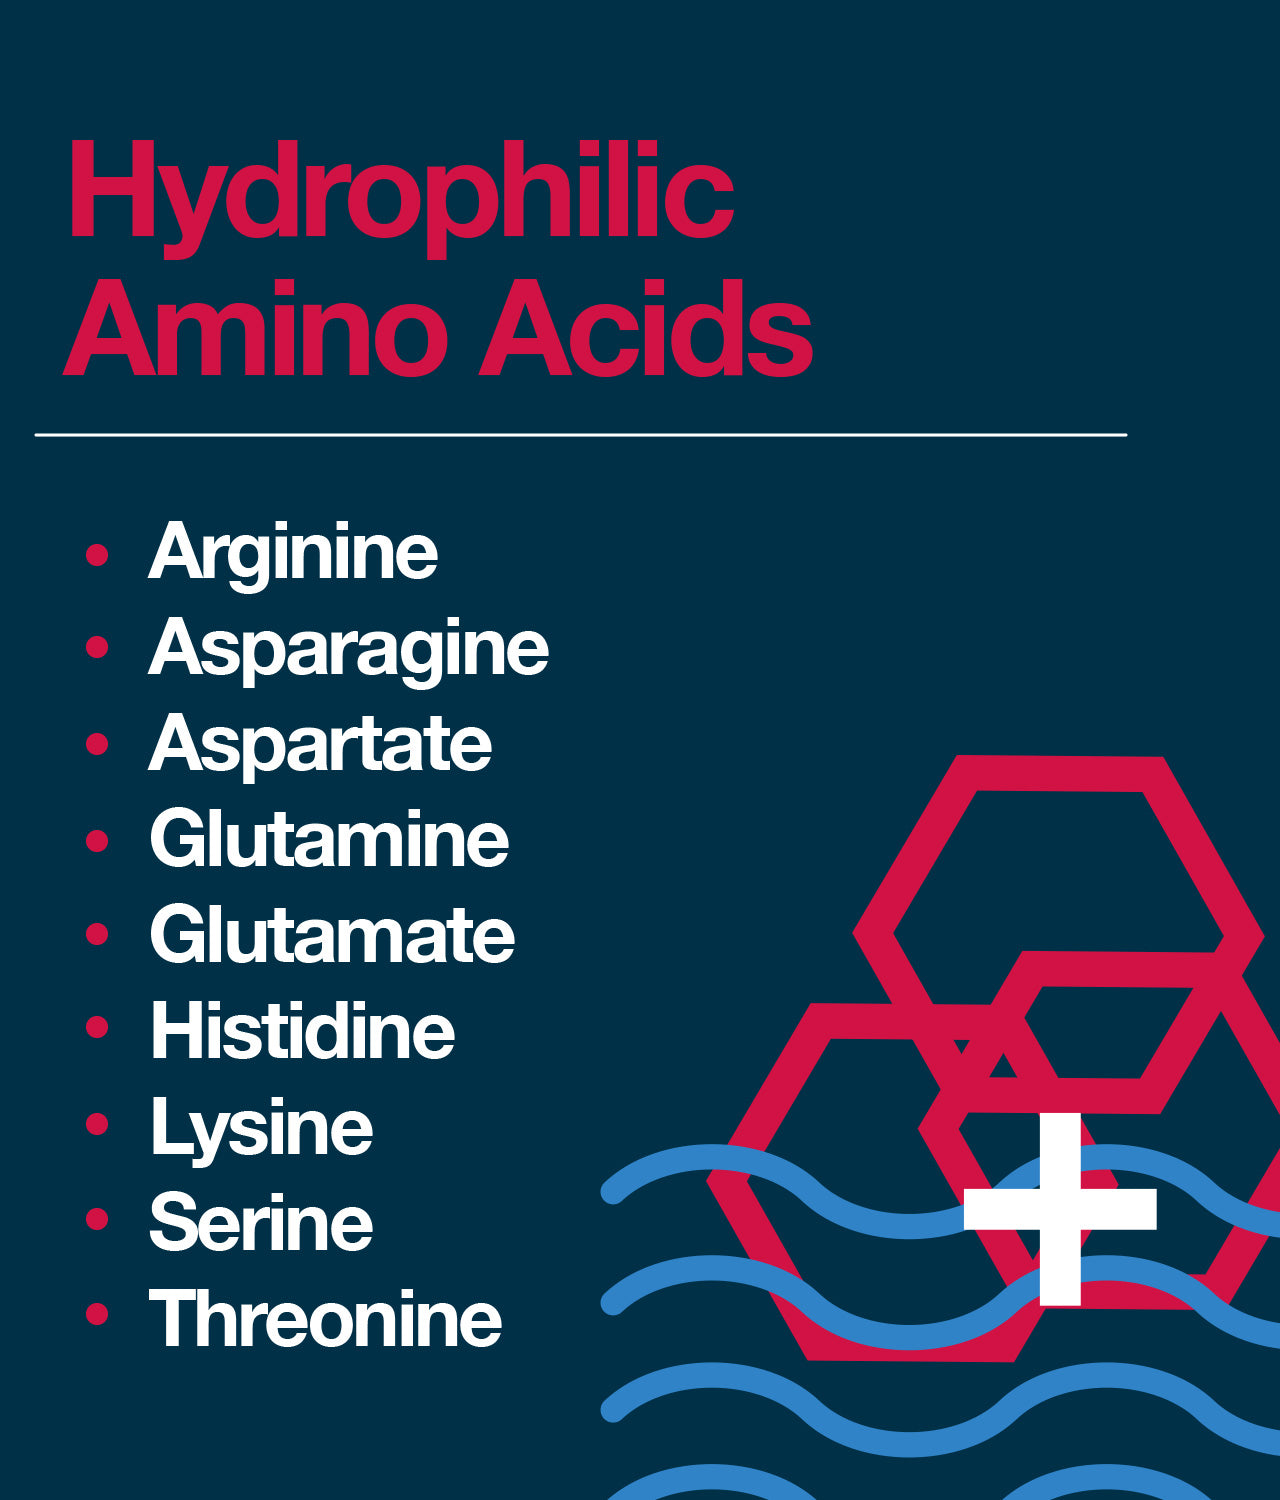 Hydrophilic amino acids: what do they do?